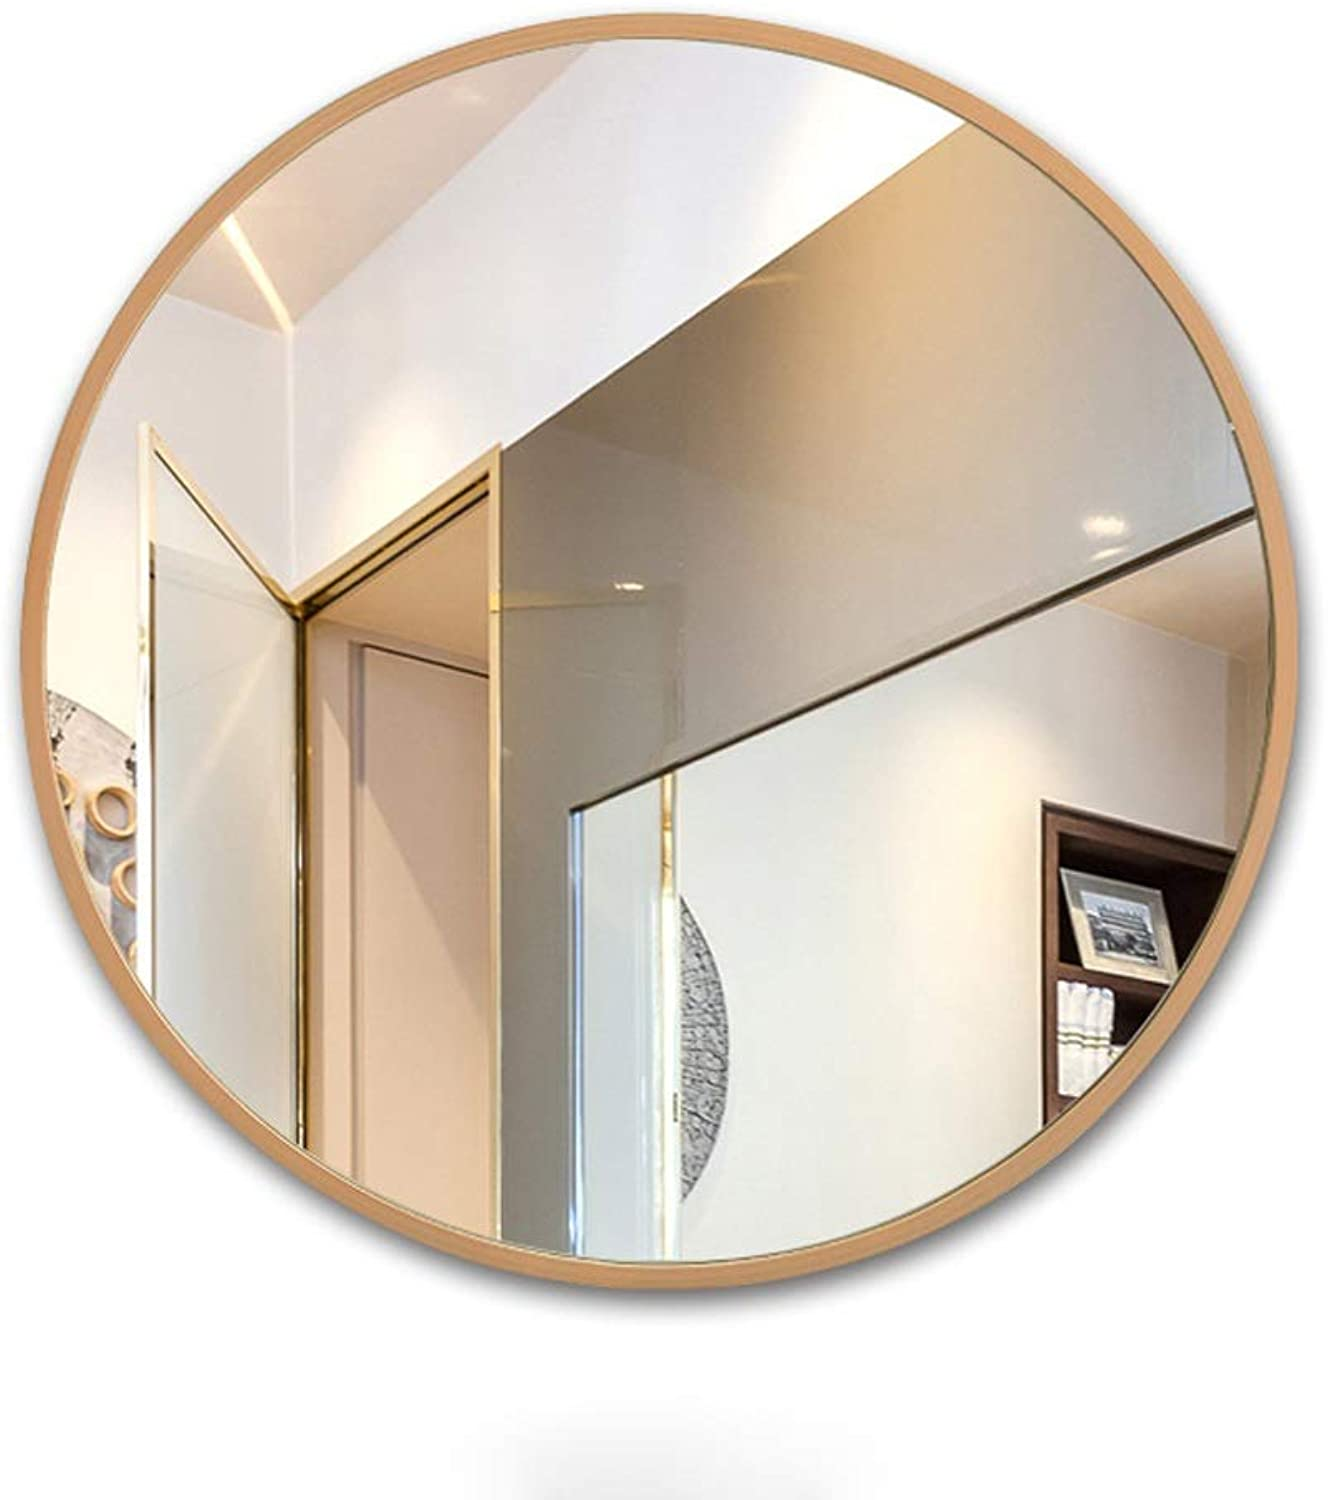 HELIn Wood Circle Frame Wall Mirror   Contemporary Premium Silver Backed Floating Round Glass Panel   Vanity, Bedroom, or Bathroom   Hanging (color   Wood, Size   60CM60CM)